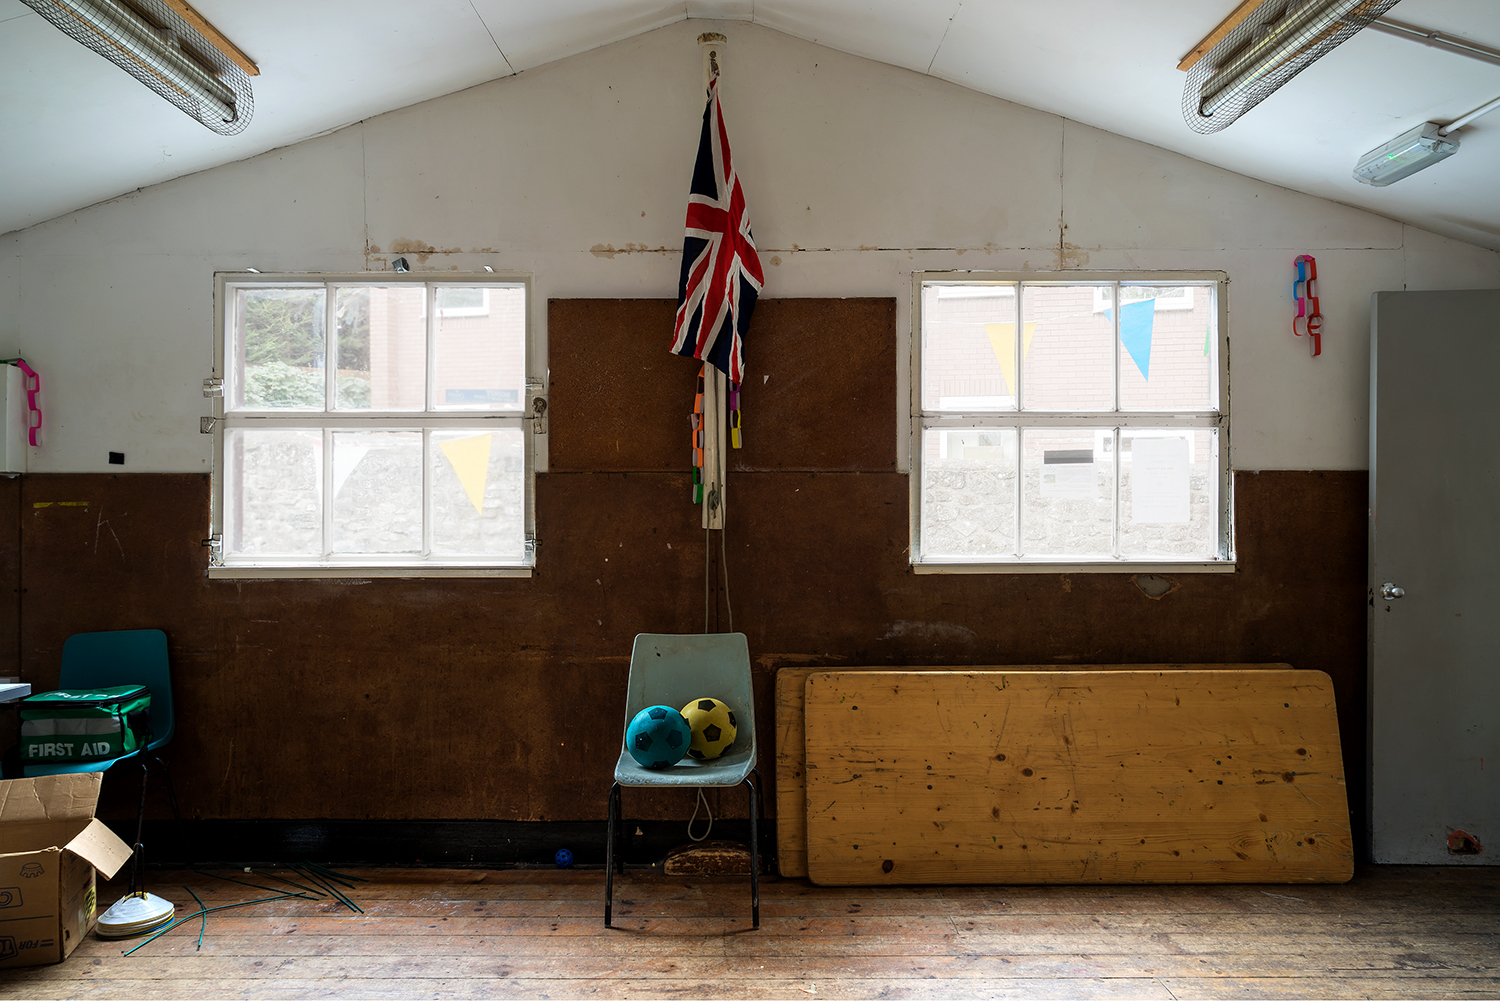 St Mary's Scout Hut